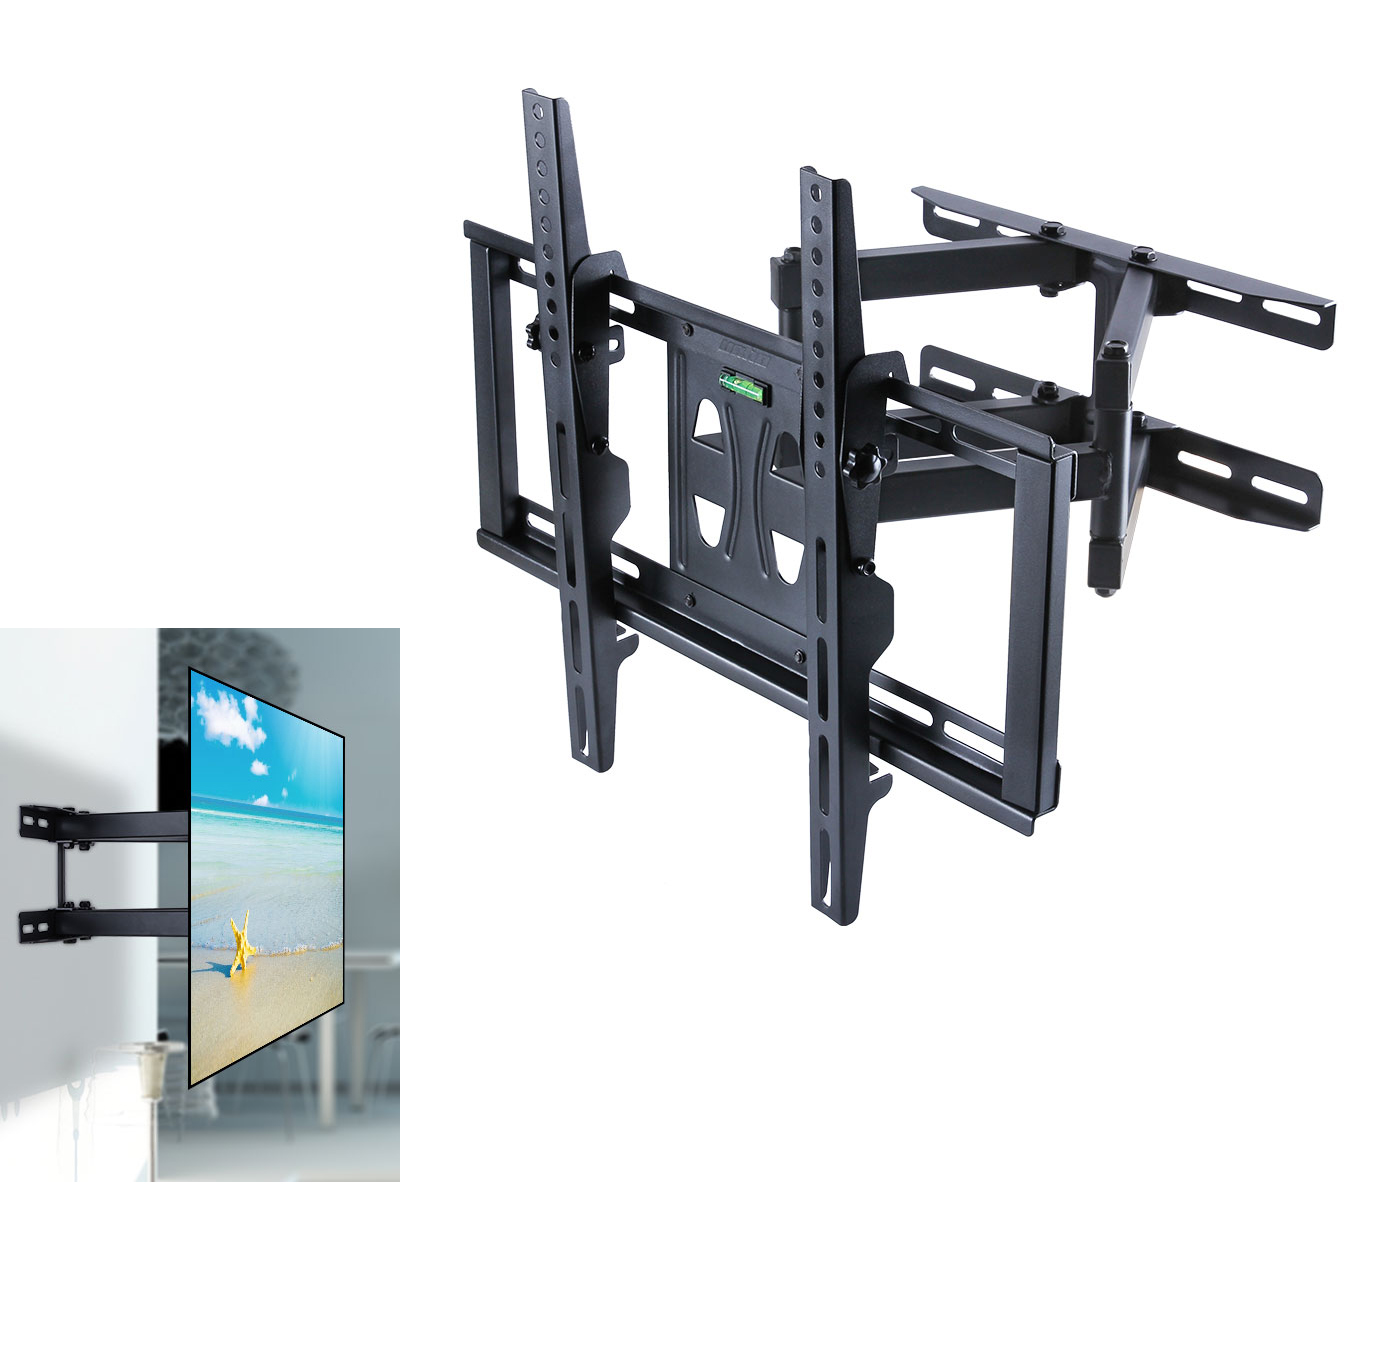 Double Arm Tilt Swivel Tv Wall Mount Bracket Plasma 55 50